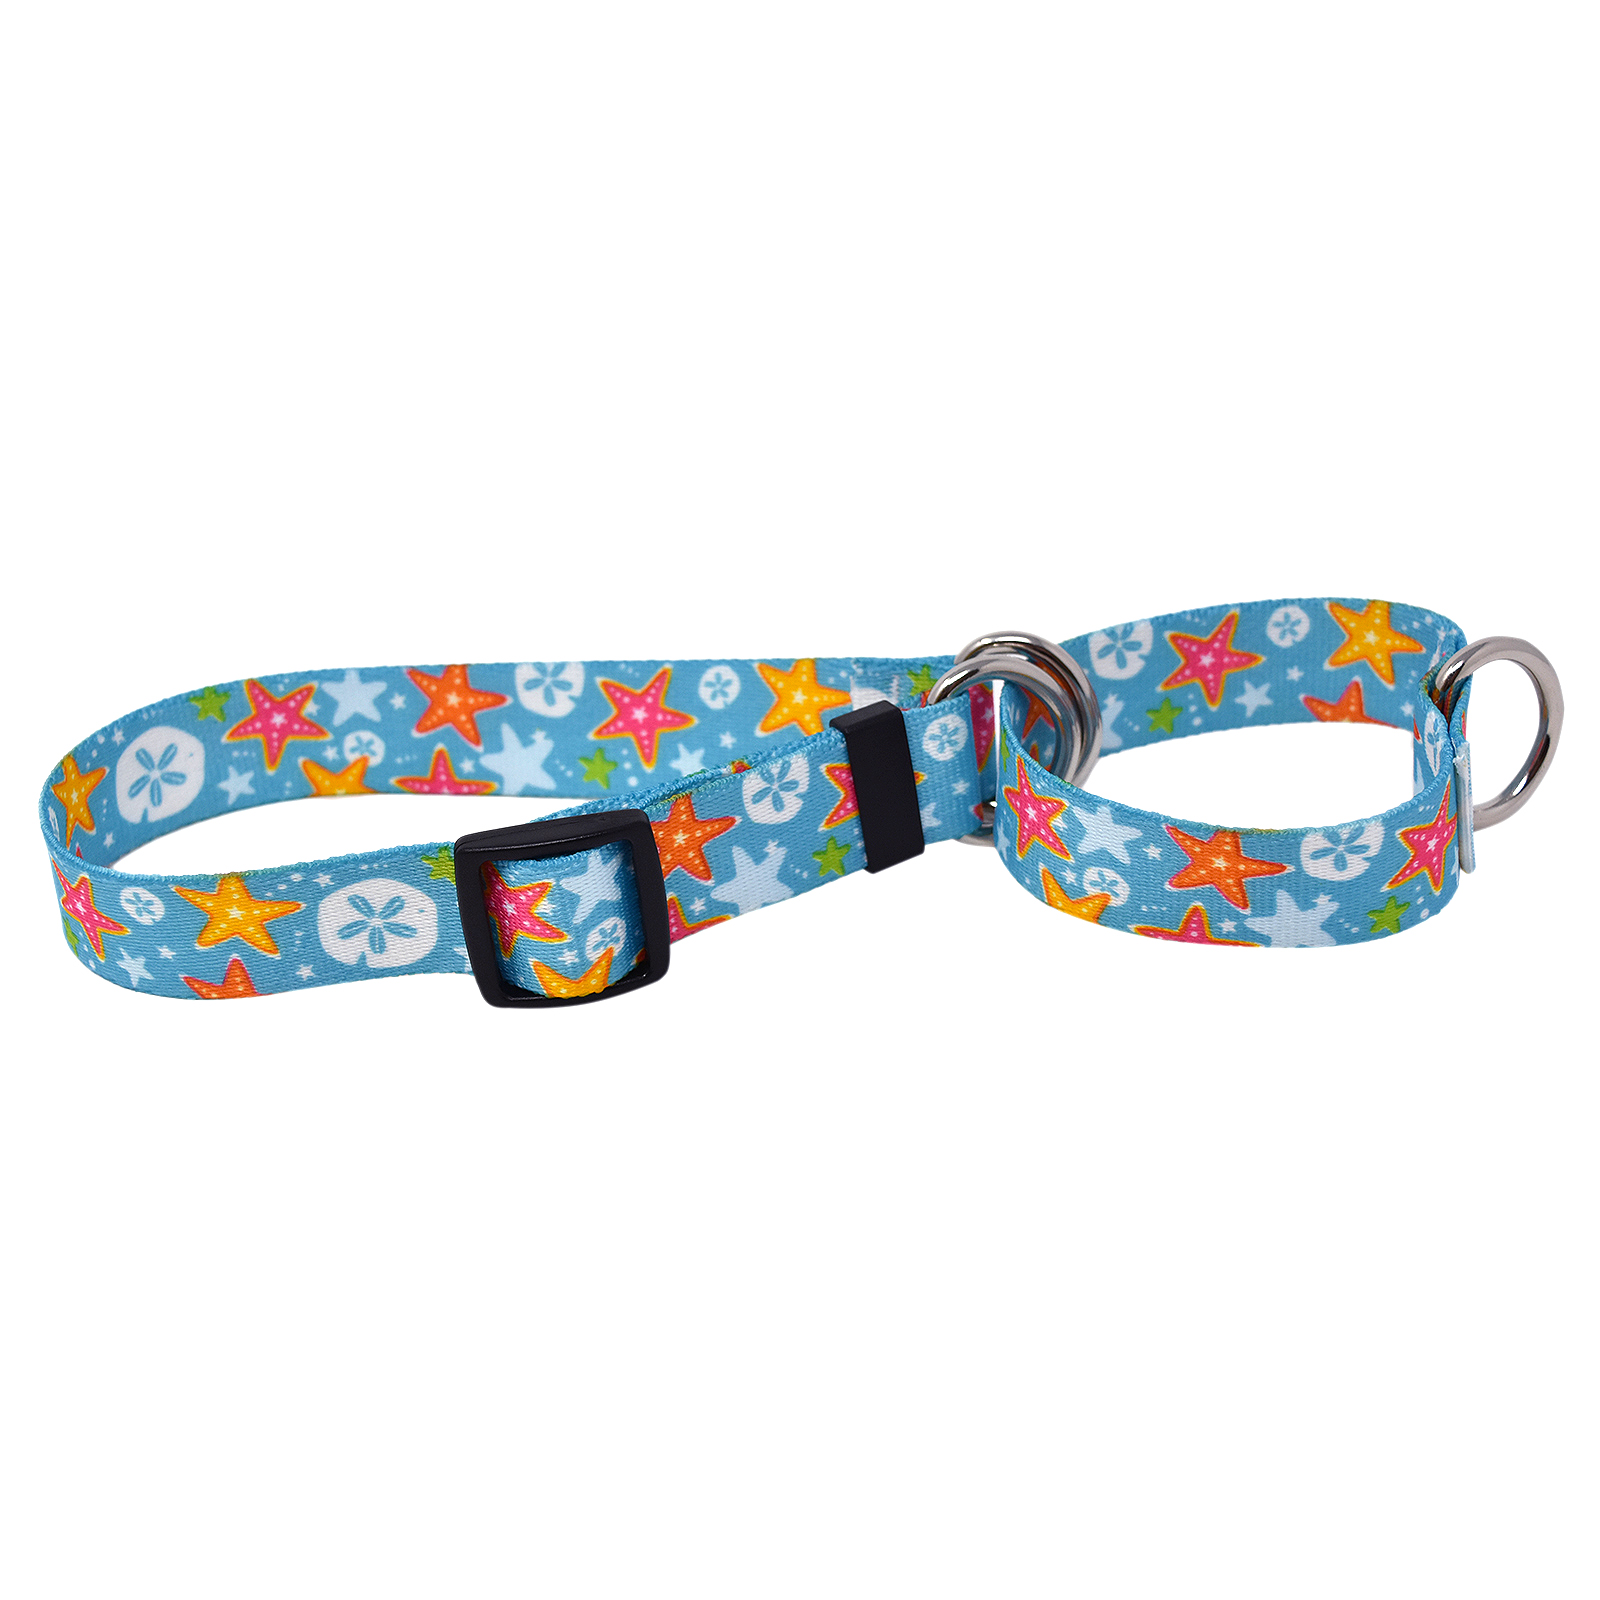 By the Sea Martingale Collar